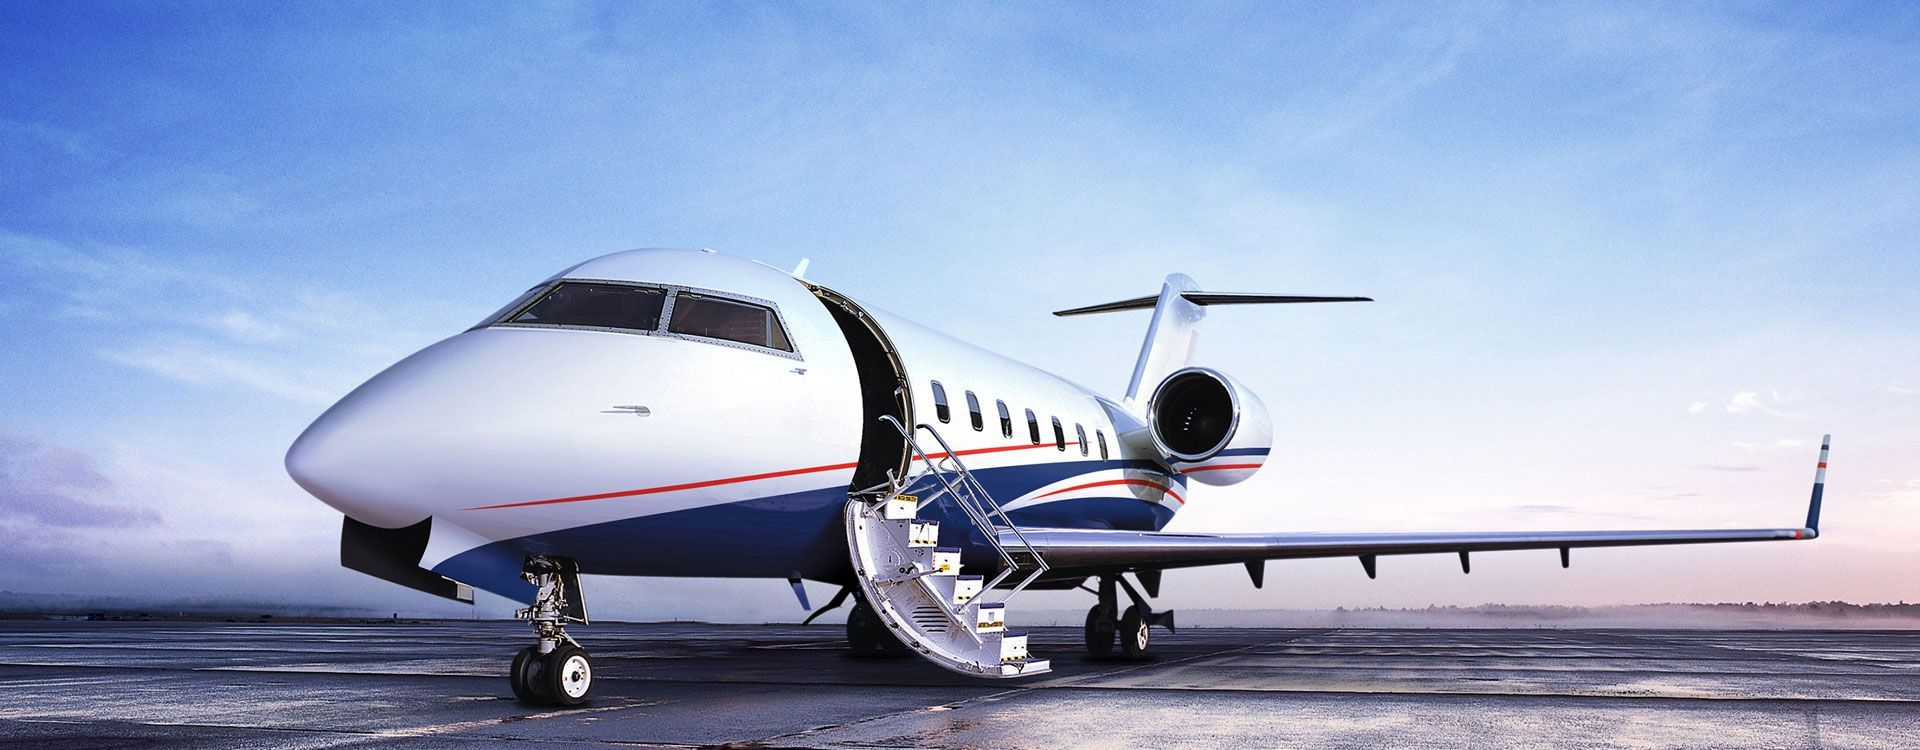 Private Jet Charter Atlanta (With images) Private jet